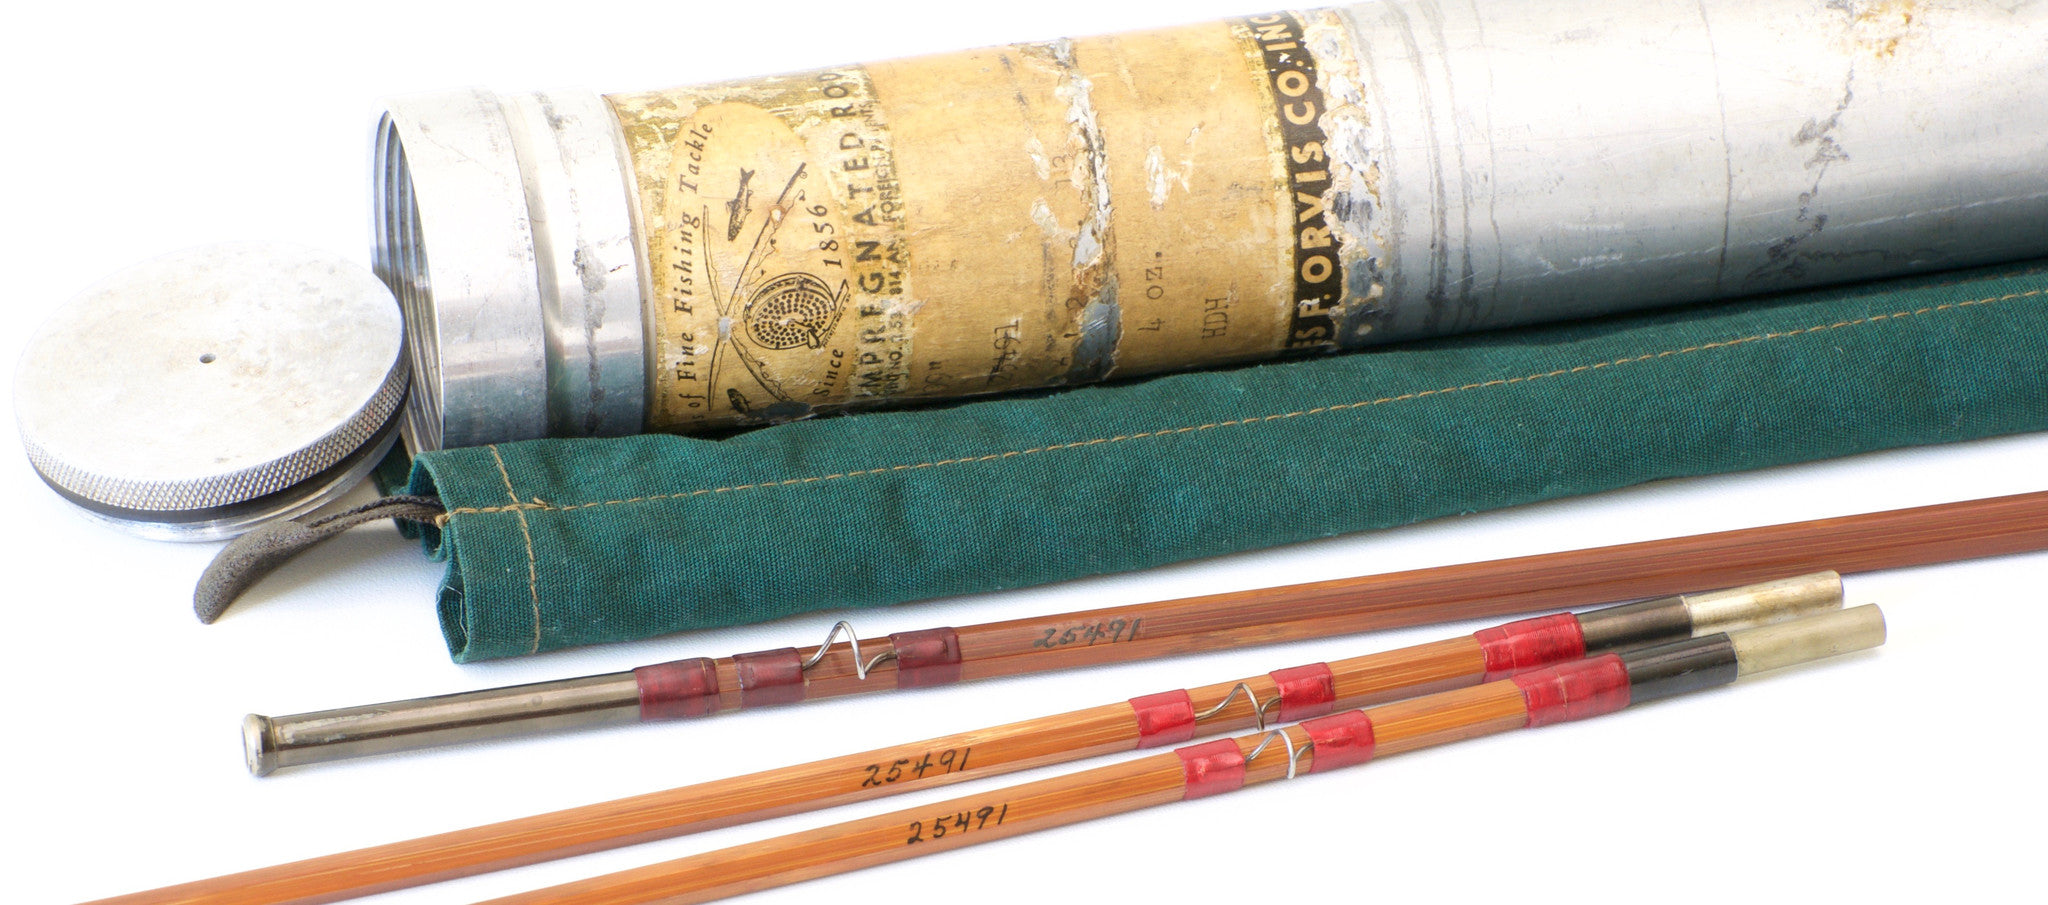 Orvis 99 Bamboo Rod - 76 5wt - Vintage Fly Tackle